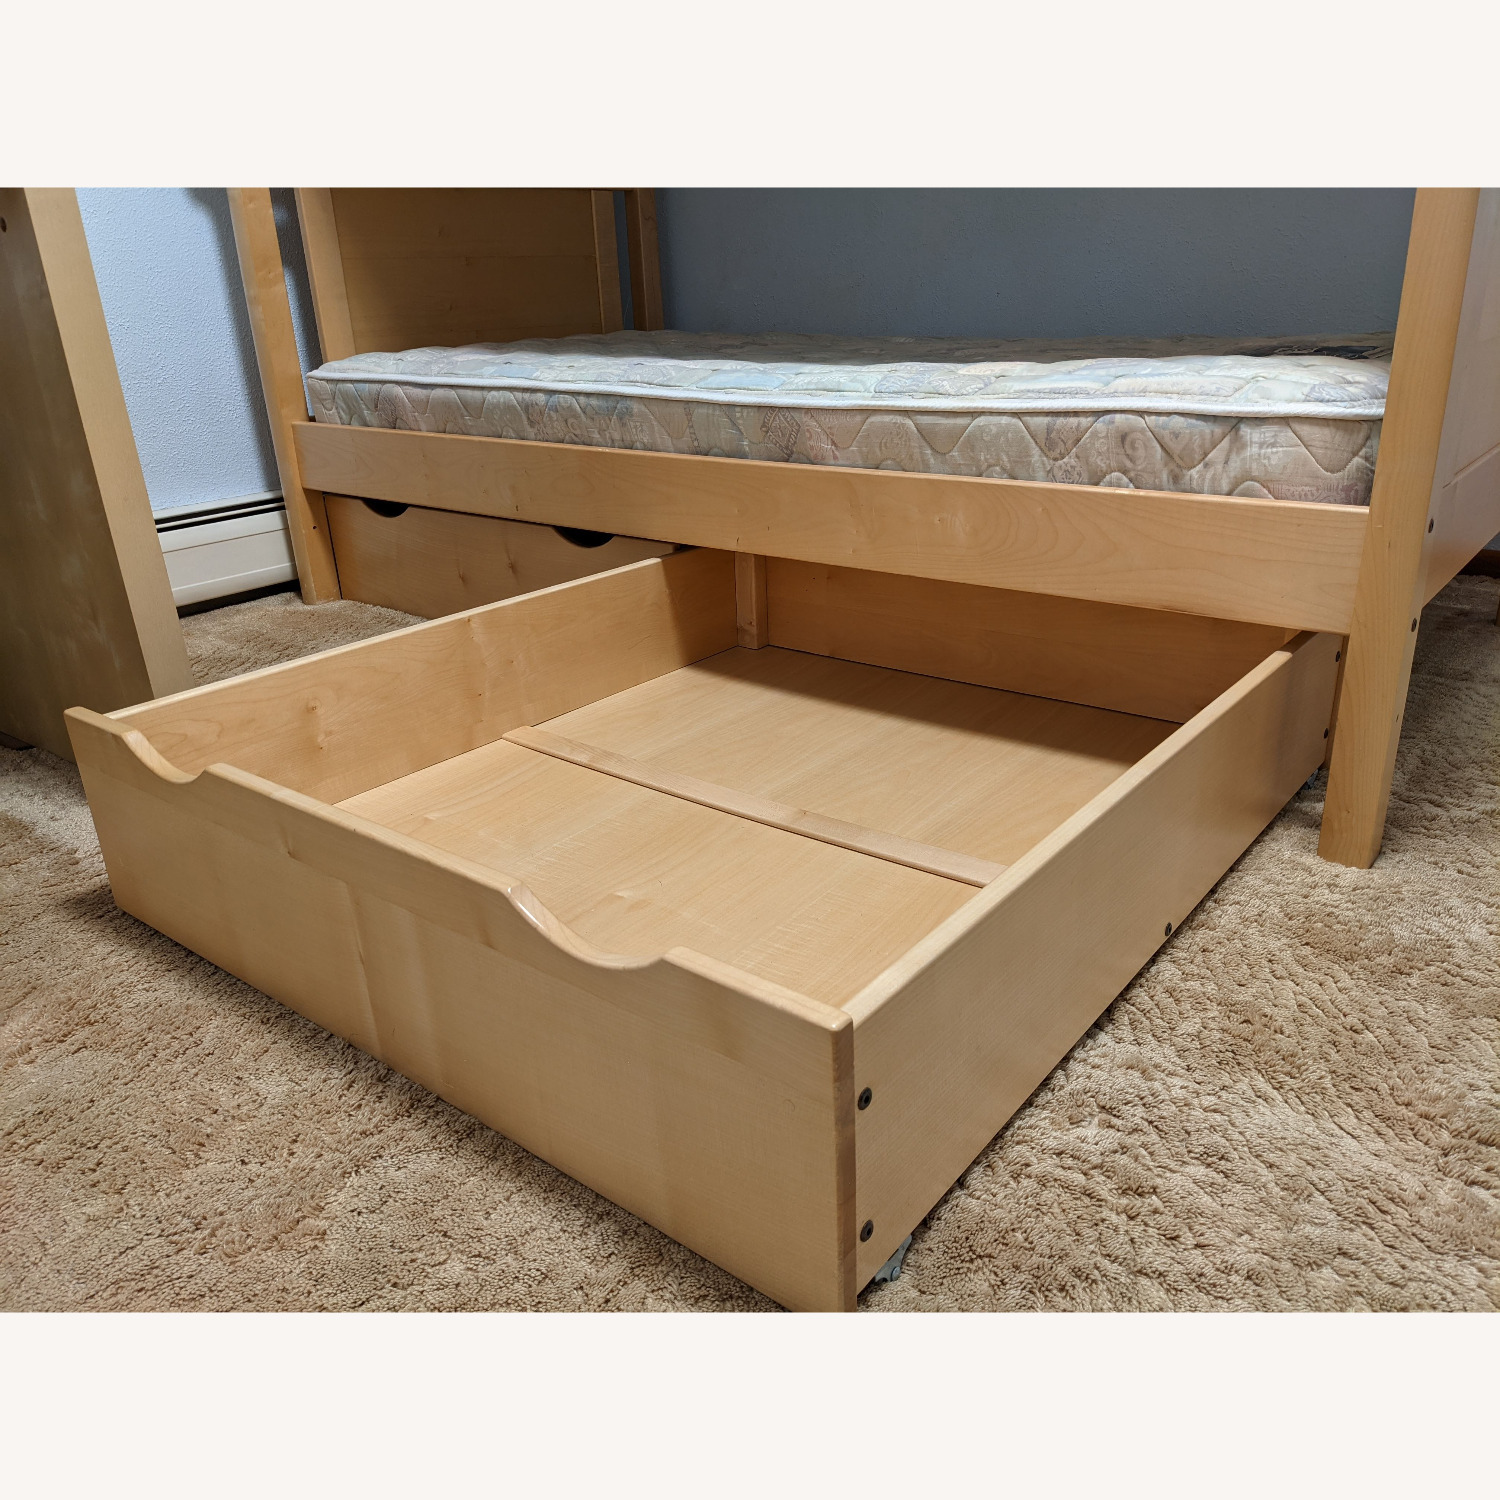 Solid Wood Bunk Beds w/ Under Bed Storage Drawers - image-2